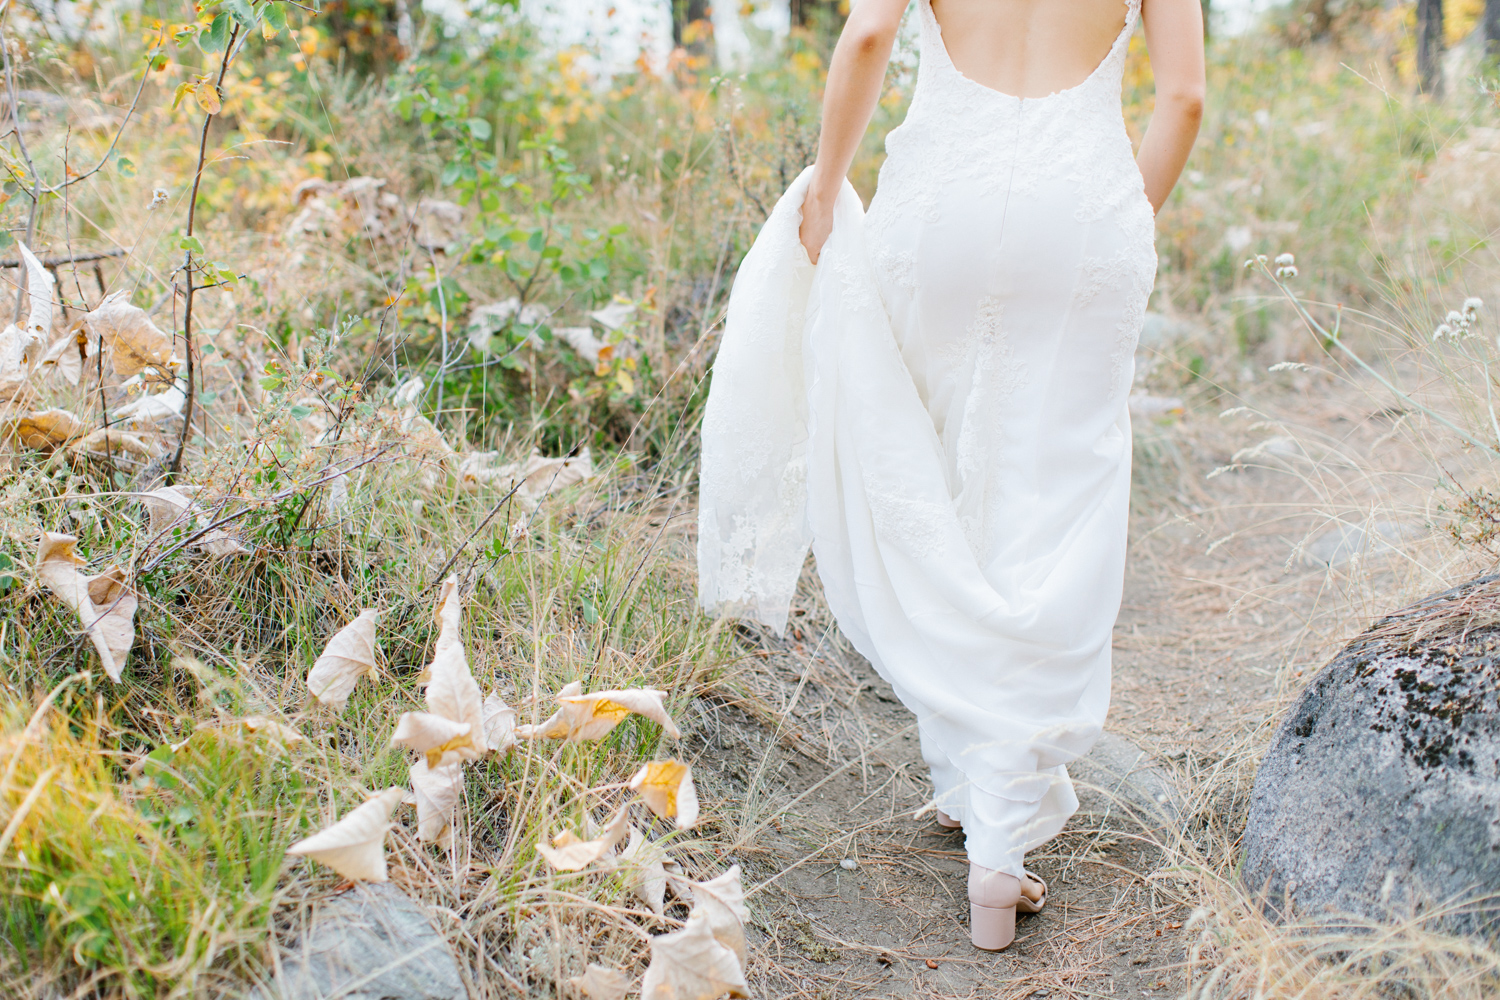 Grey and White Wedding in the Mountains of Leavenworth, Washington | Sleeping Lady | Classic and Timeless Wedding | VSCO | Bride with Bridesmaids | Grey Bridesmaids Dresses.jpg-2304.jpg